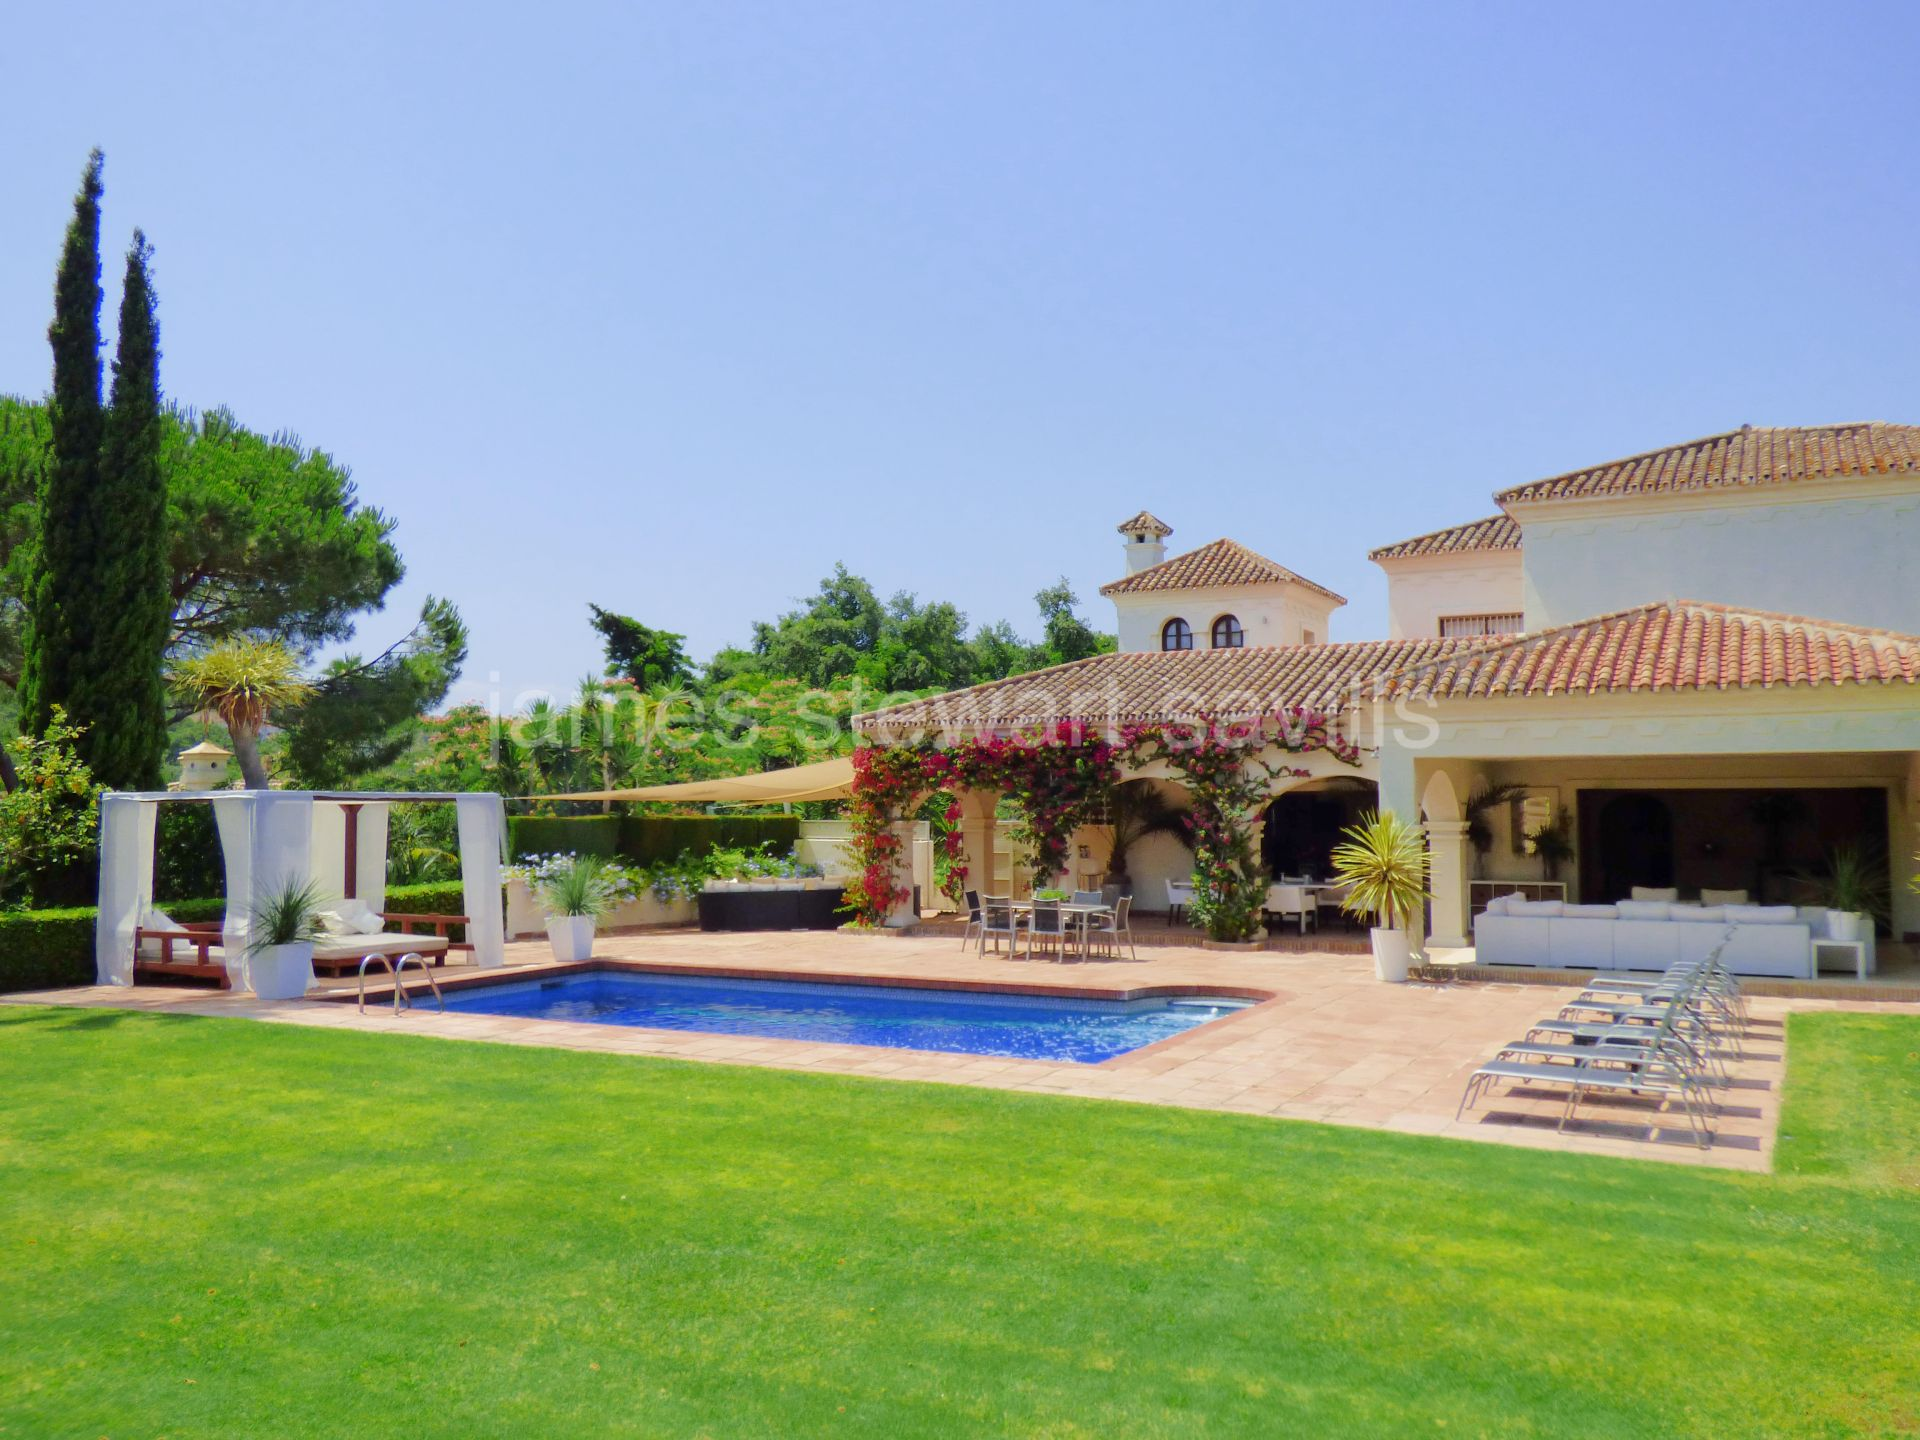 EXCLUSIVE - Spacious villa with a beautiful outdoor area